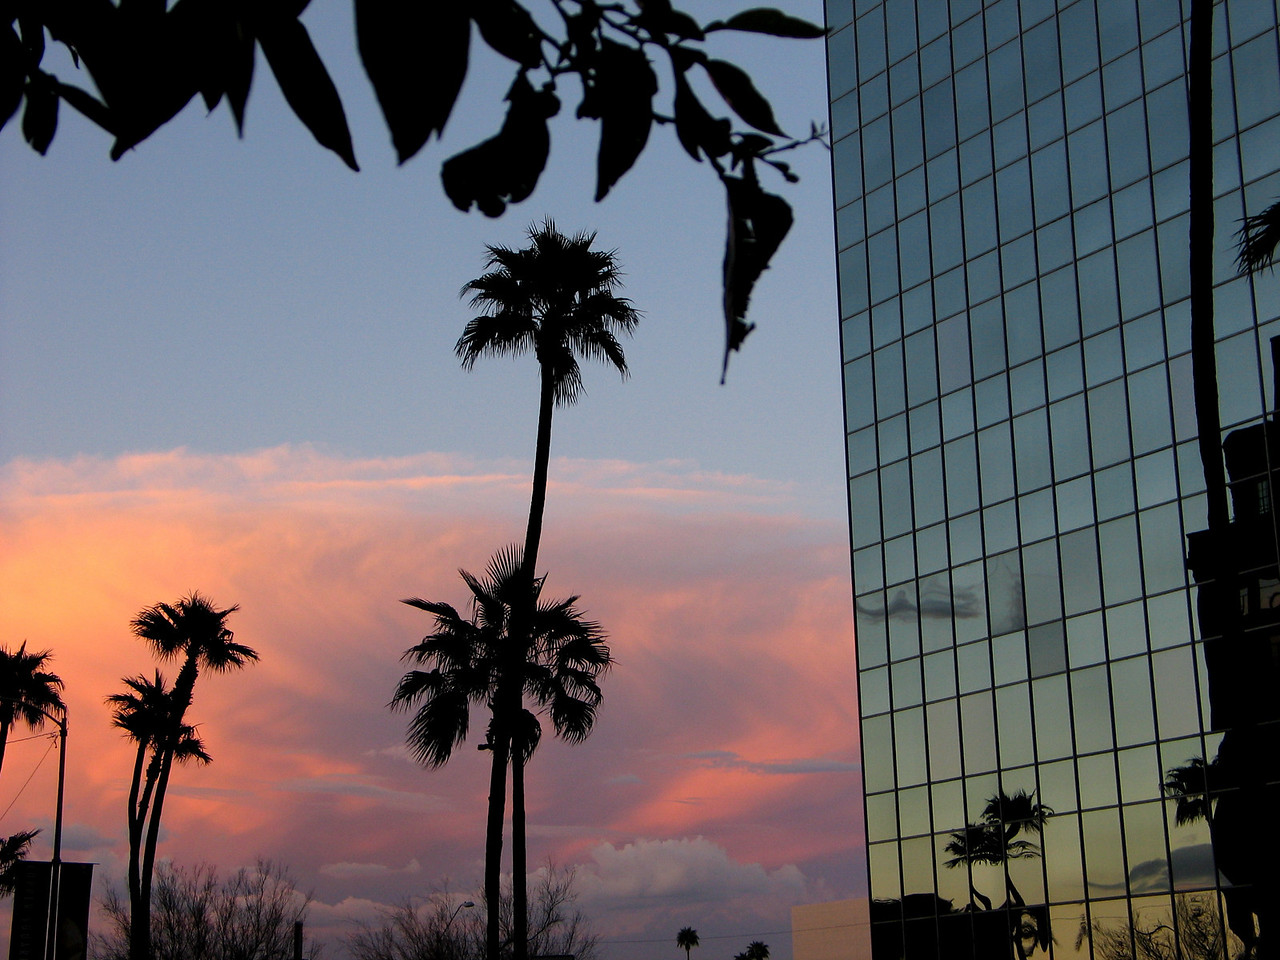 Sunset in downtown Phx, February 2005